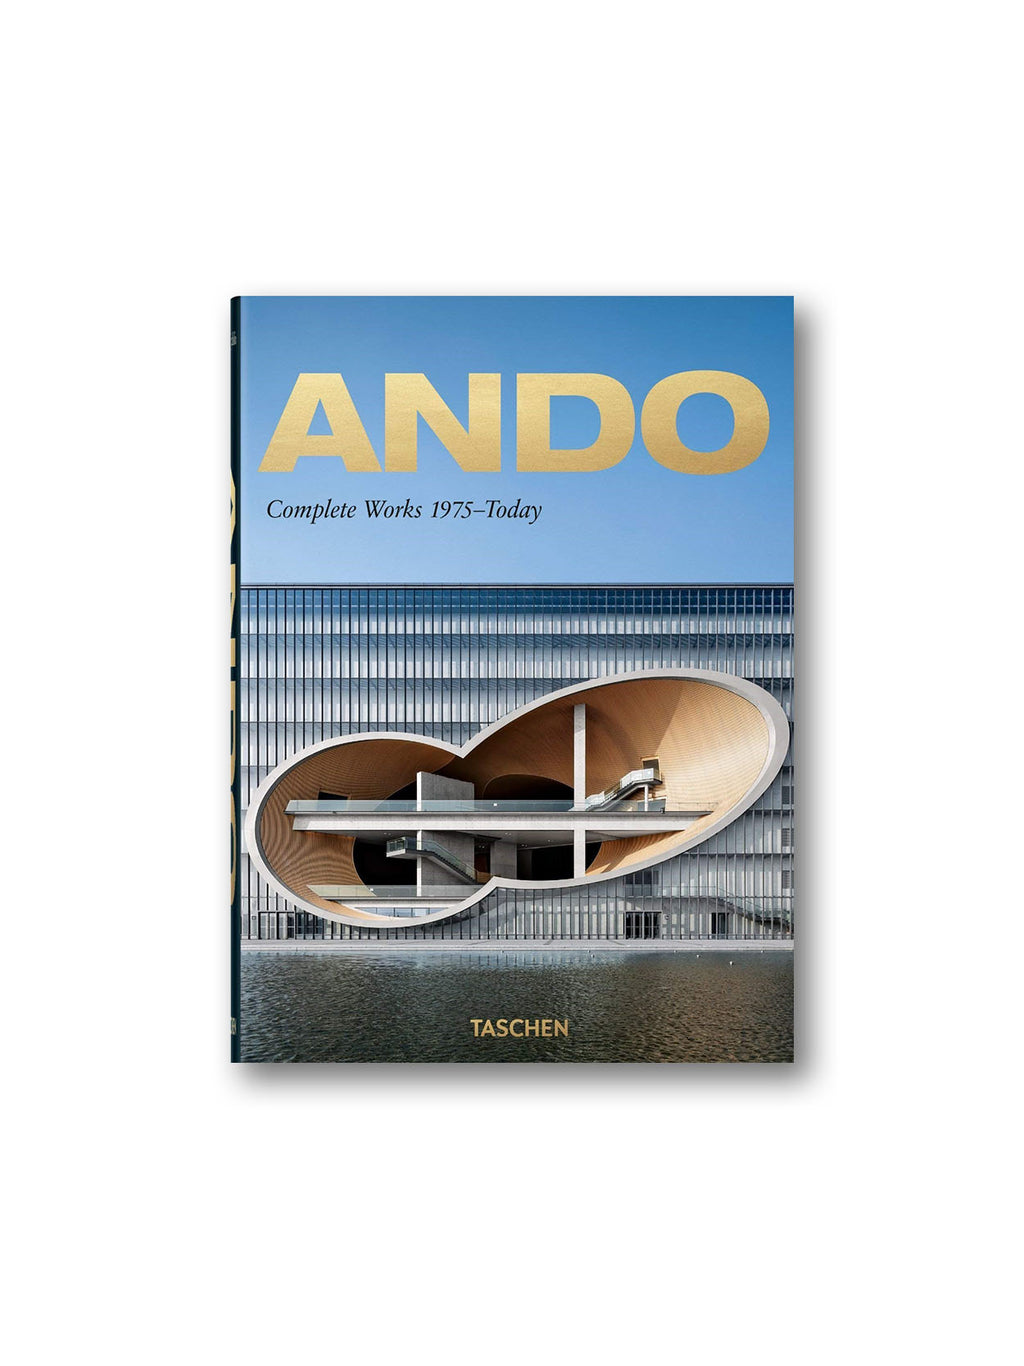 Ando. Complete Works 1975-Today - 40th Anniversary Edition